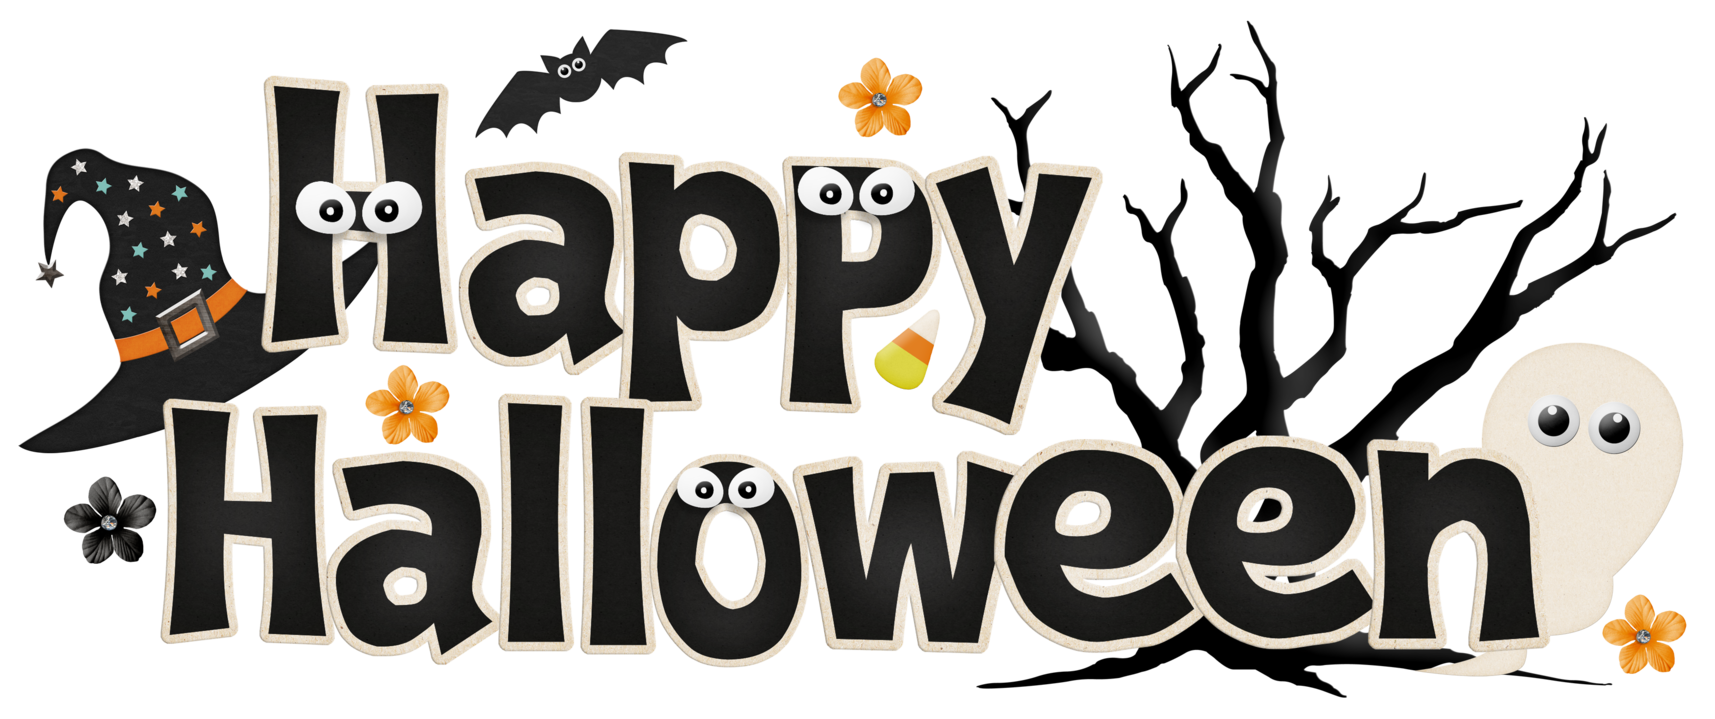 Free happy halloween clipart transparent Month of october clipart free clipart images clipartwiz 2 clipartix ... transparent